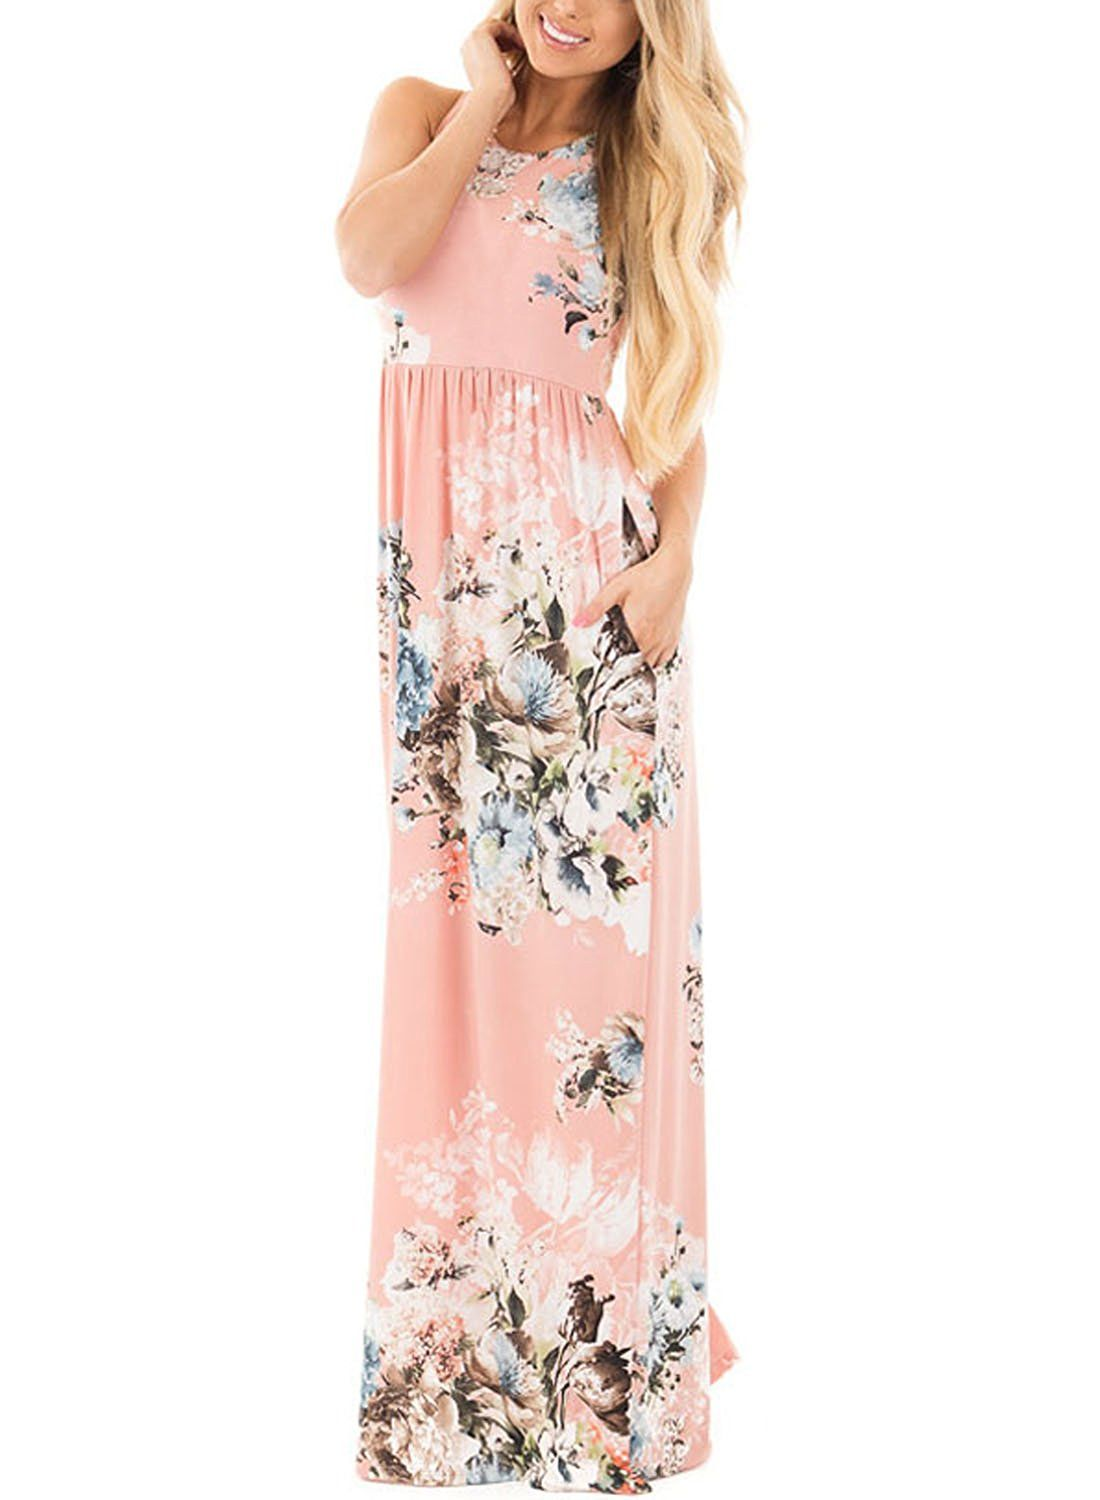 Lady Swain Women S Casual Floral Print Racerback Sleeveless Maxi Dress With Pockets Click On T Boho Dresses Long Printed Summer Dresses Floral Dress Summer [ 1500 x 1100 Pixel ]